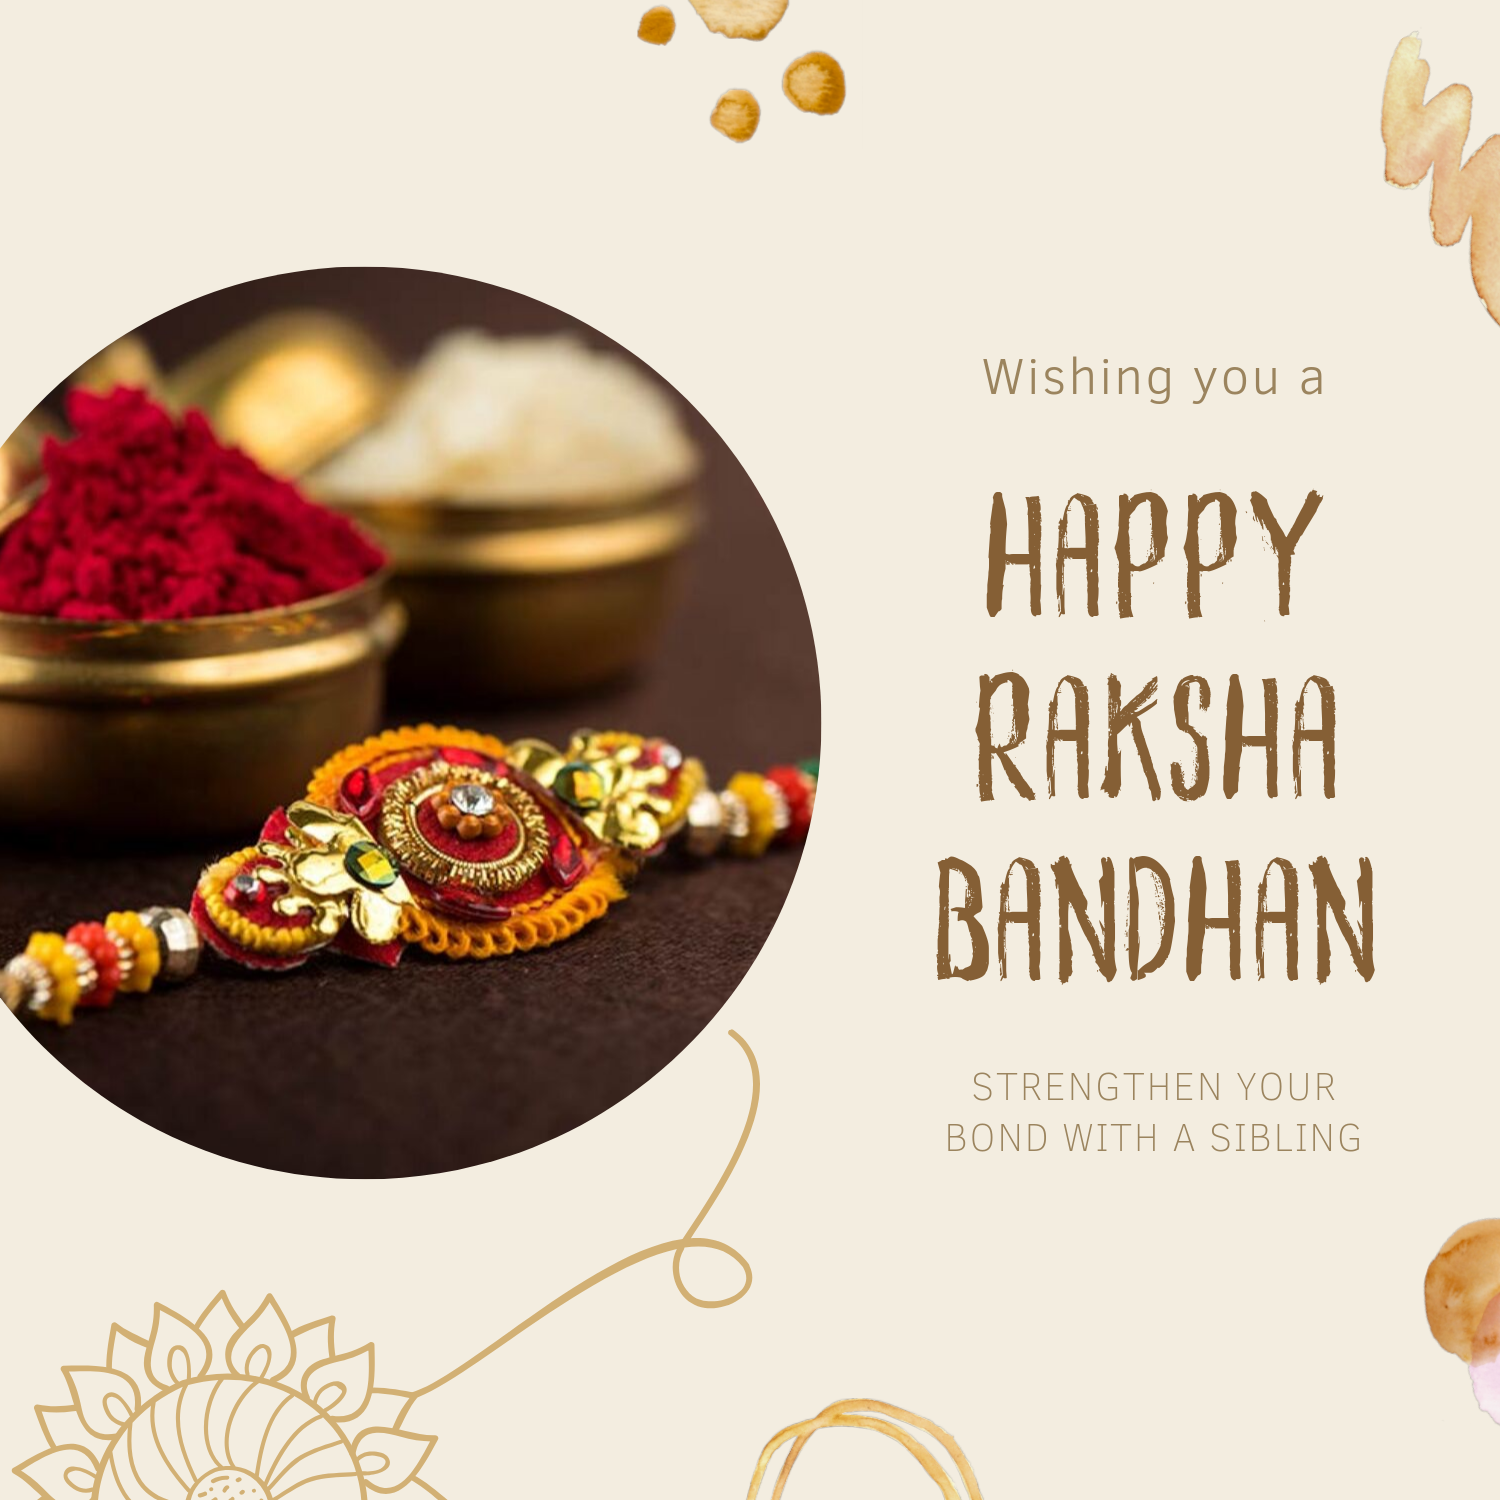 Raksha Bandhan Blessing Quotes For Brother